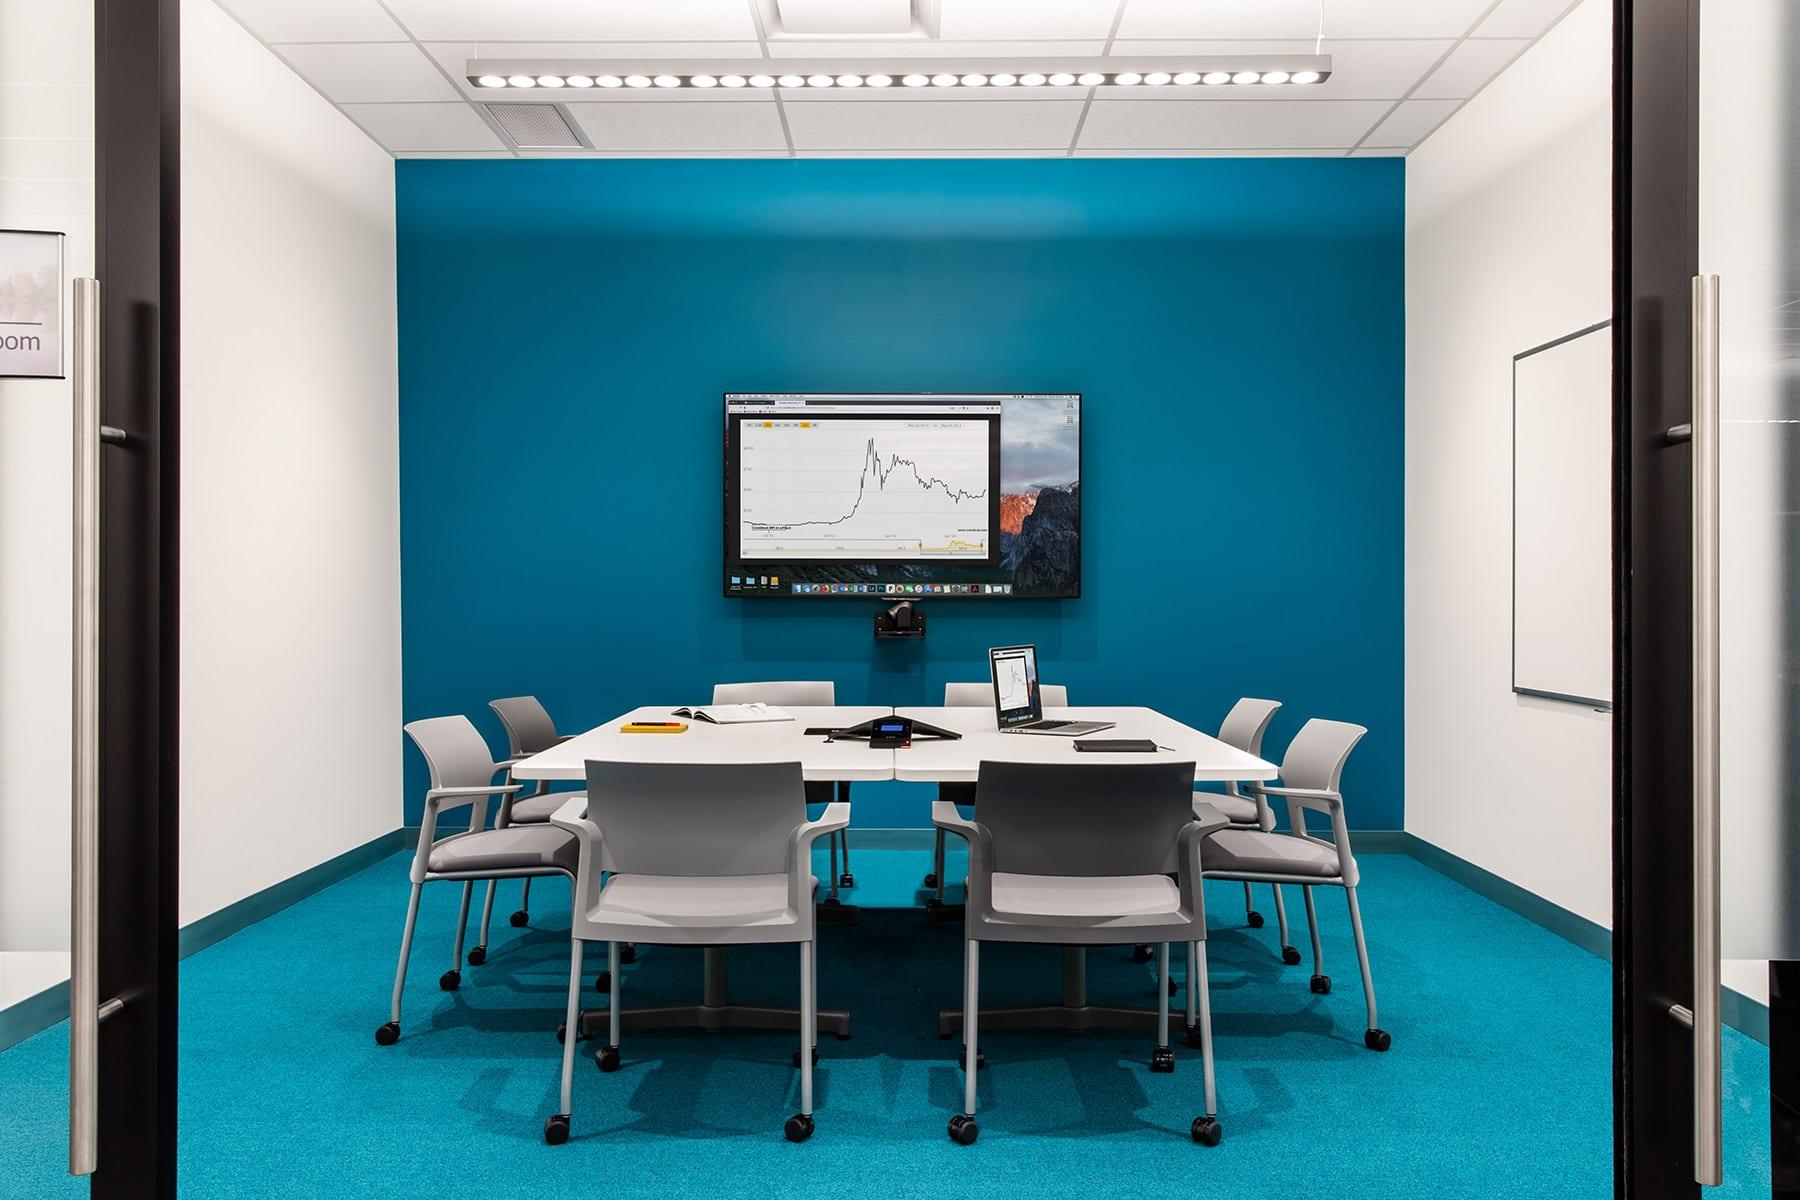 Fraser Health Health Informatics office meeting room with acoustic ceilings and sky blue painted walls